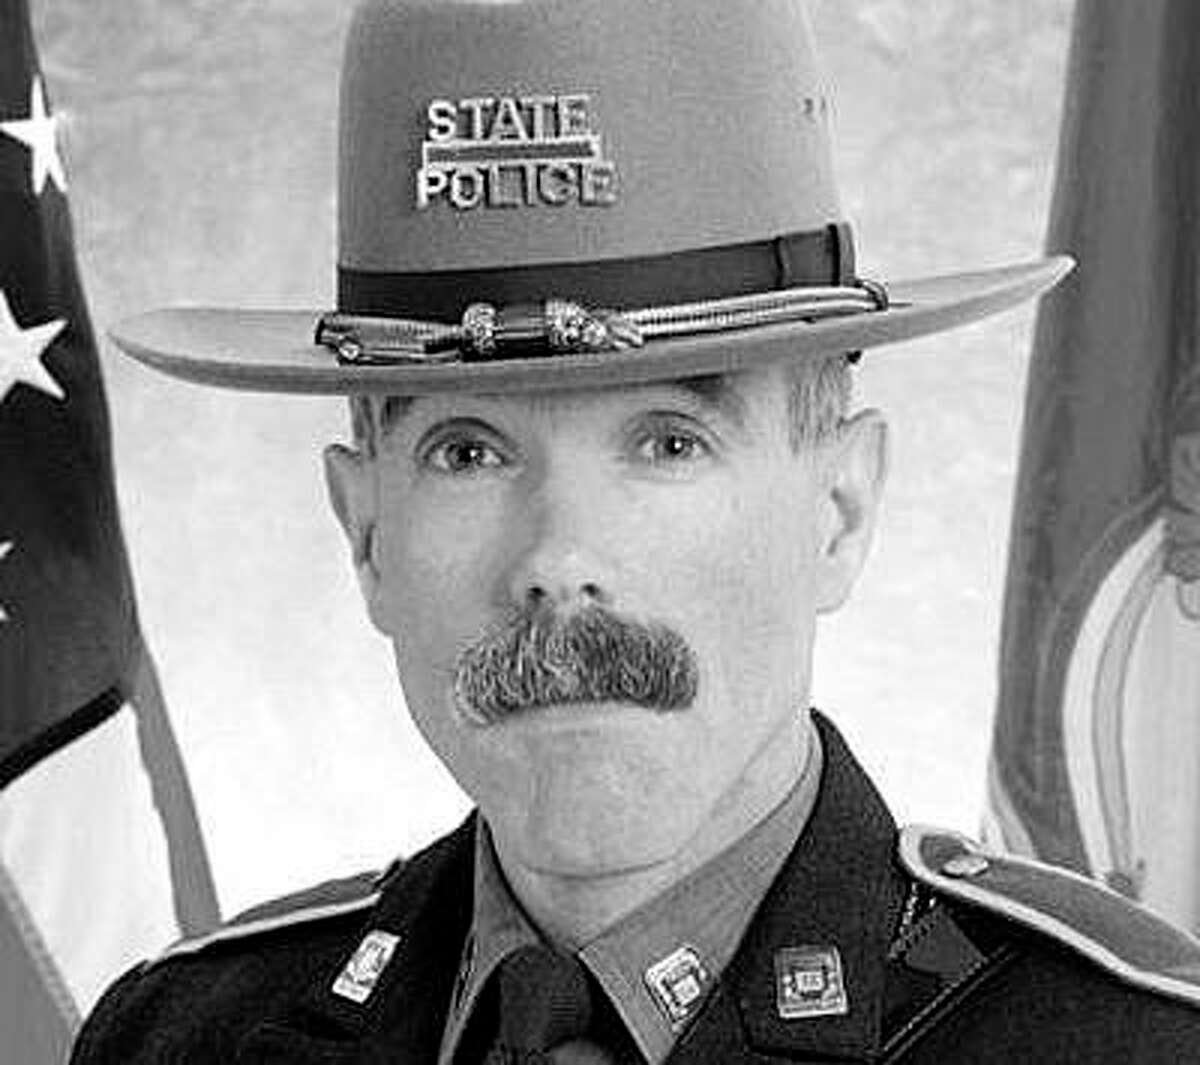 """State police announced Sunday the death of Sgt. Llewellyn """"Llew"""" Rowe Jr. He died on Sept. 7, 2021, at the age of 65 after a battle with cancer, state police and his obituary said."""